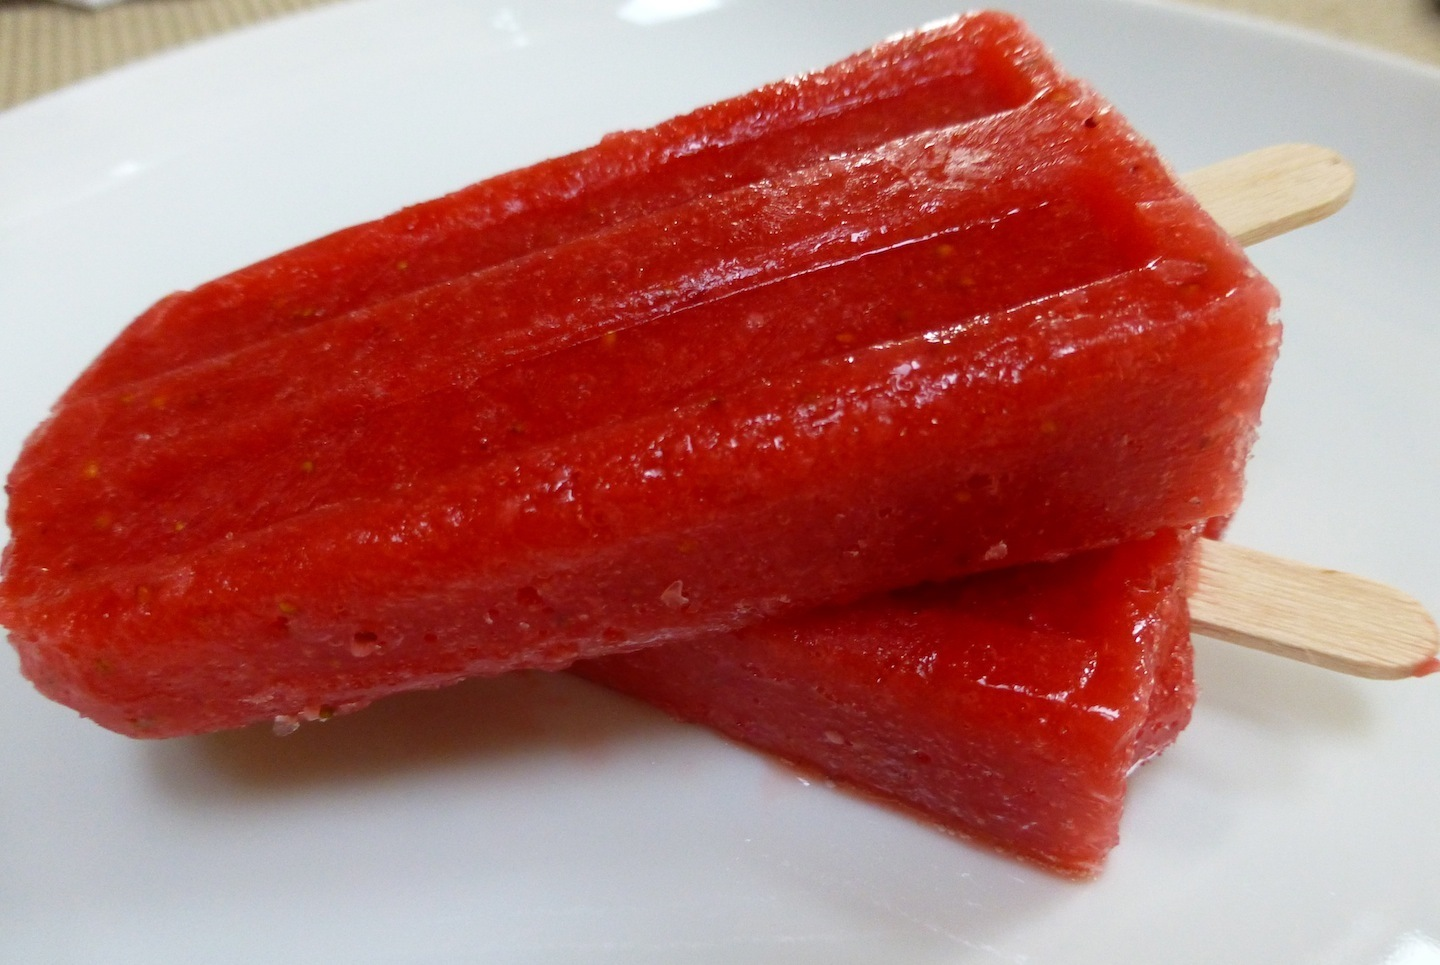 Refreshingly Raw 20-Calorie Strawberry Popsicles - Gluten, Dairy And Sugar Free!